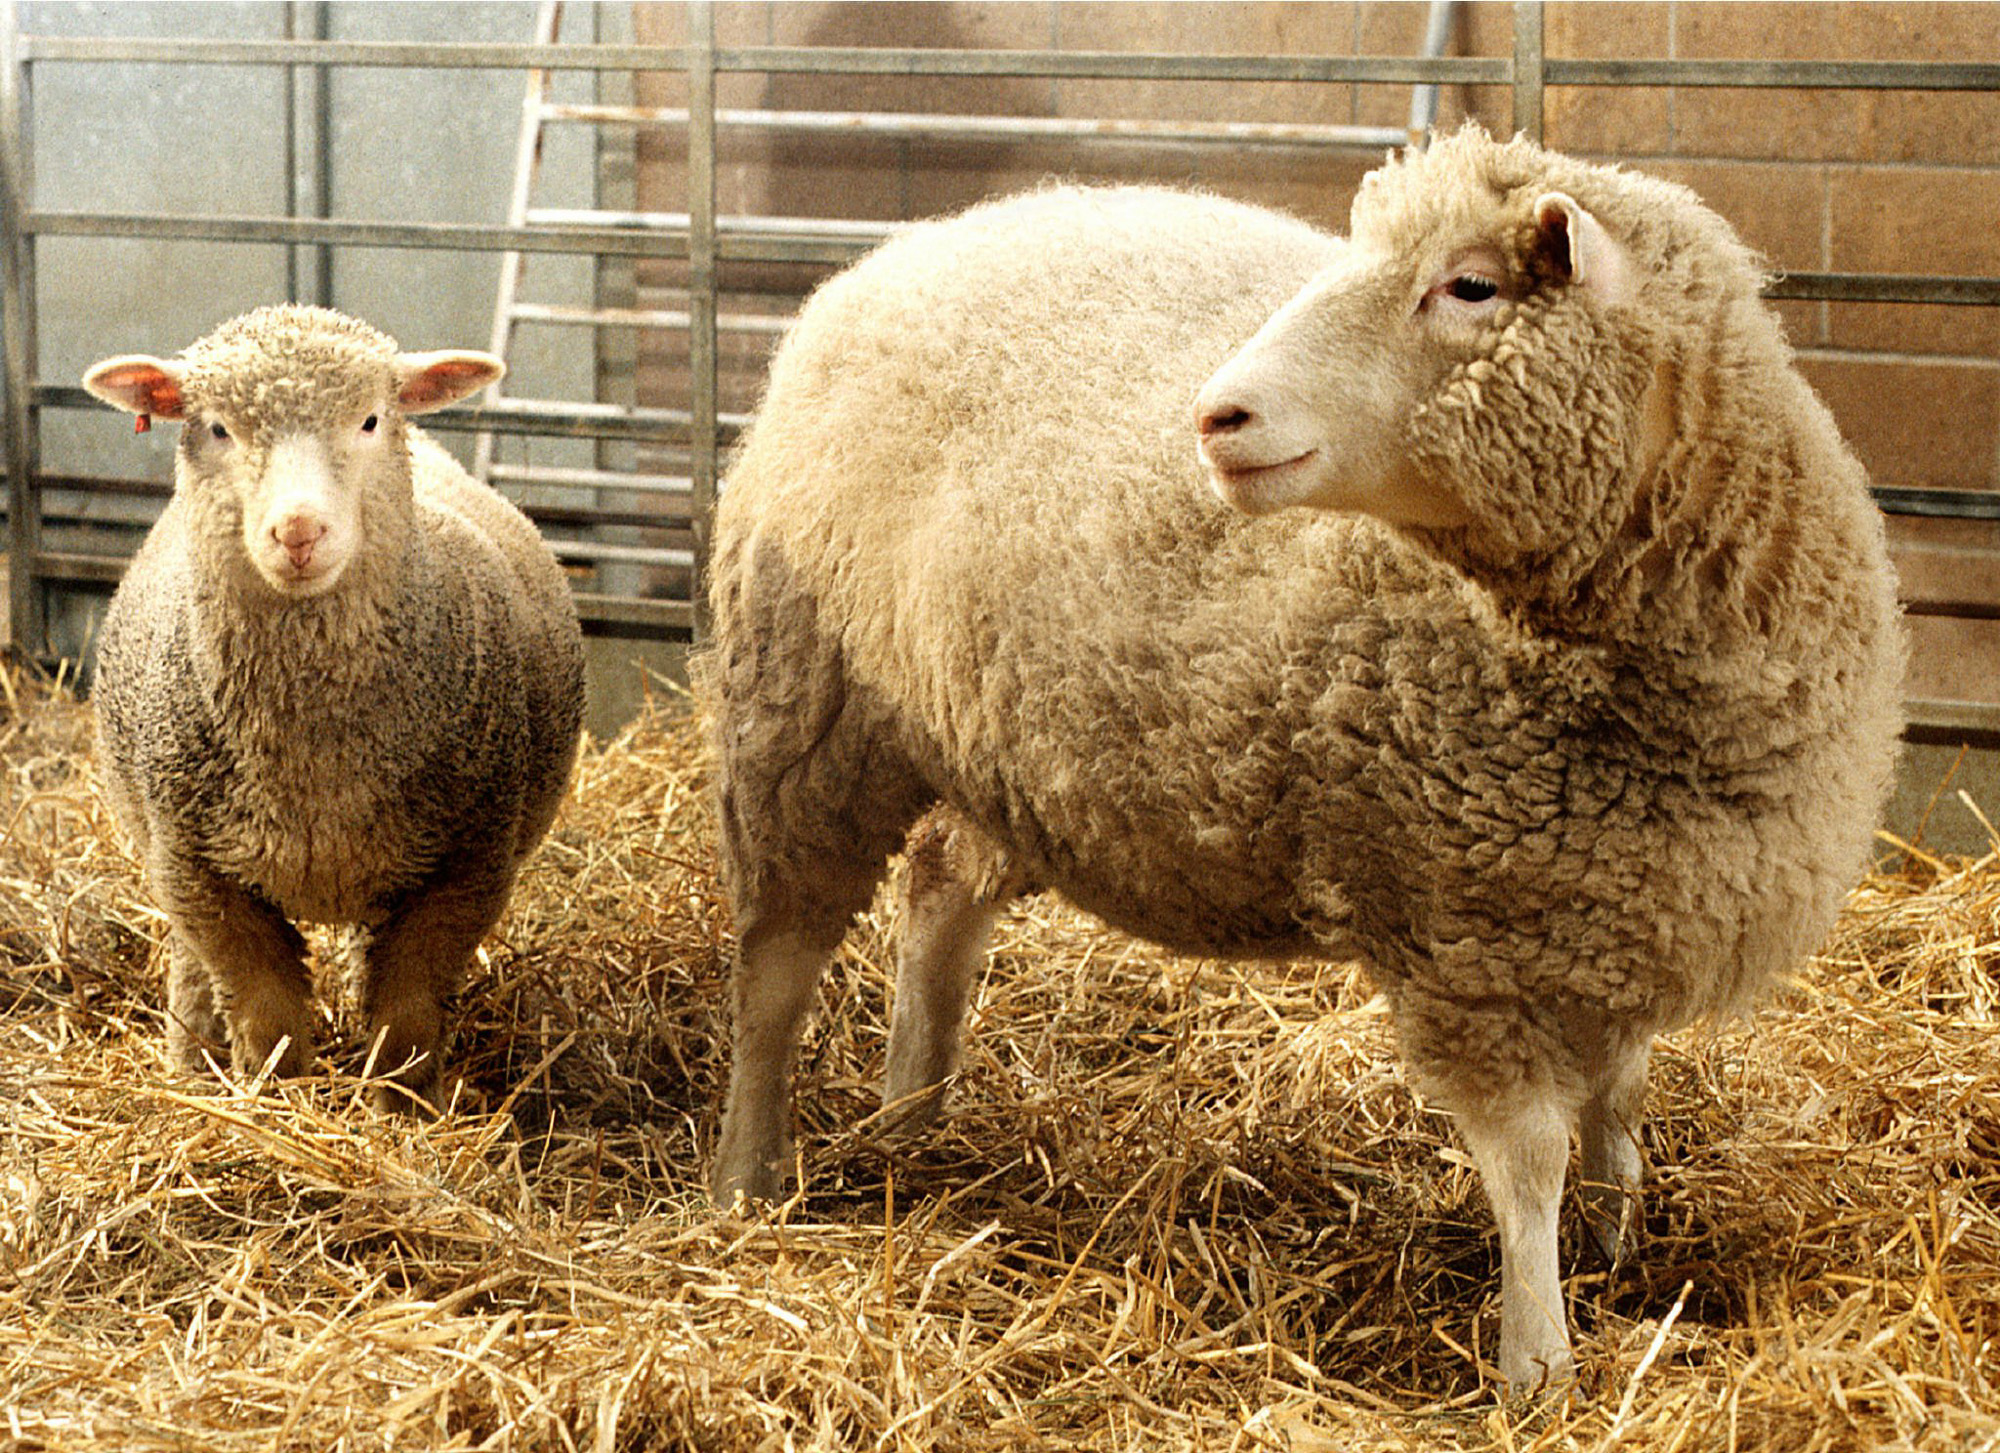 first successful adult clone reported by scientists A report of the witherspoon council on ethics and the integrity of science   learned in 1997 of dolly the sheep, the first clone produced from an adult  mammal,  for the first time successfully obtained stem cells from cloned human  embryos.